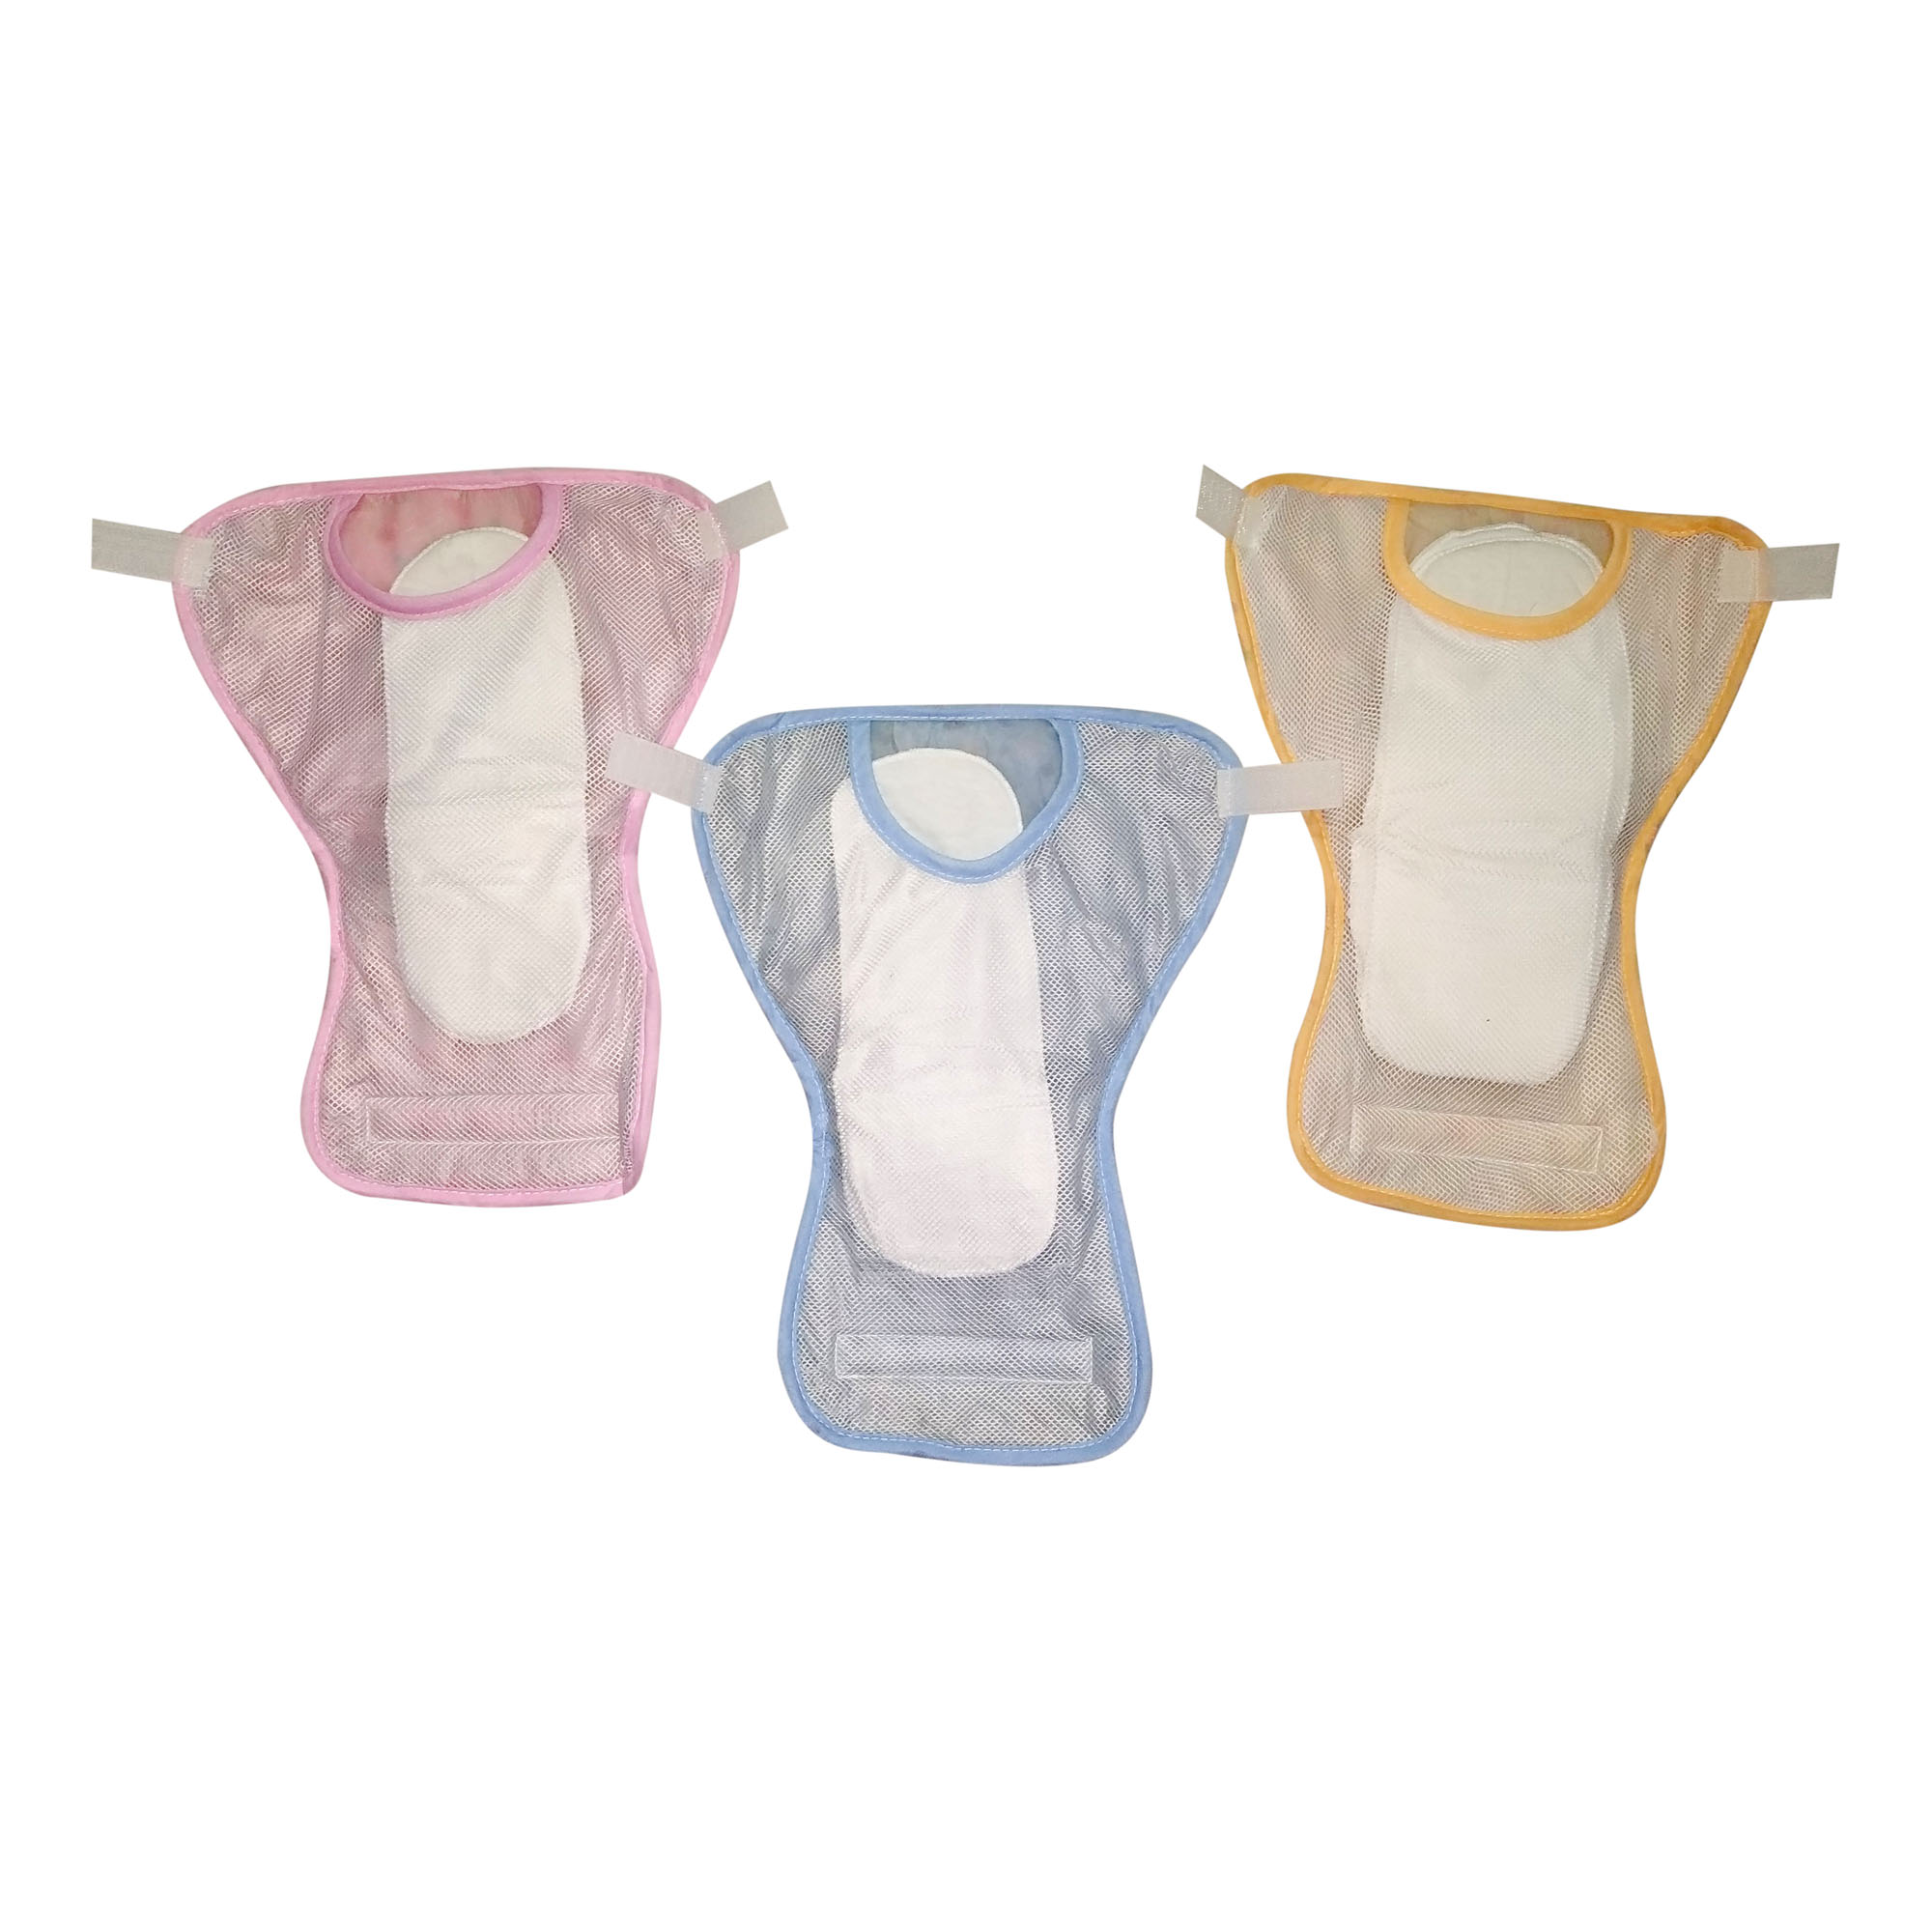 Set of 3 Assorted Net Diaper by Love Baby - 537 S Combo P5